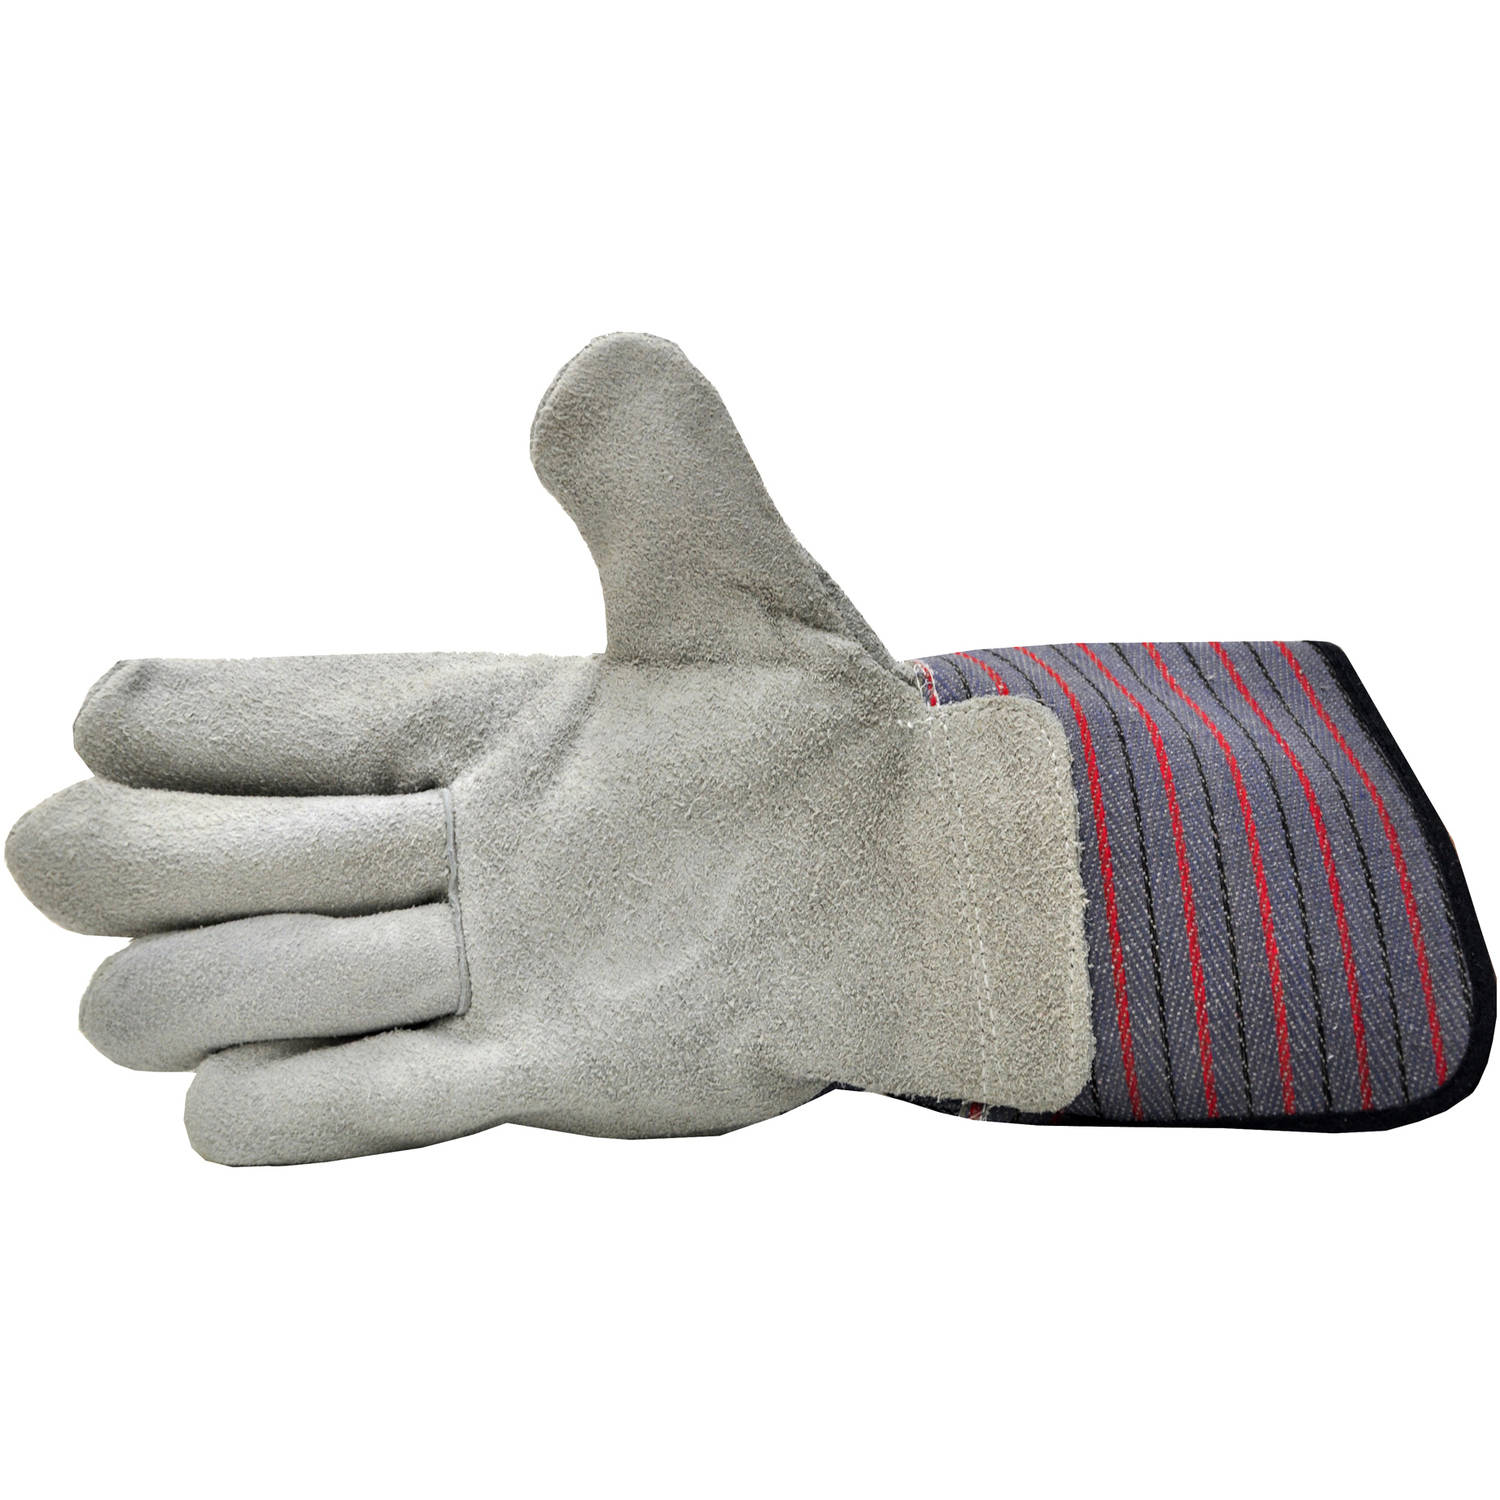 G & F Leather Palm Work Gloves with Extra Long Cuff, Large